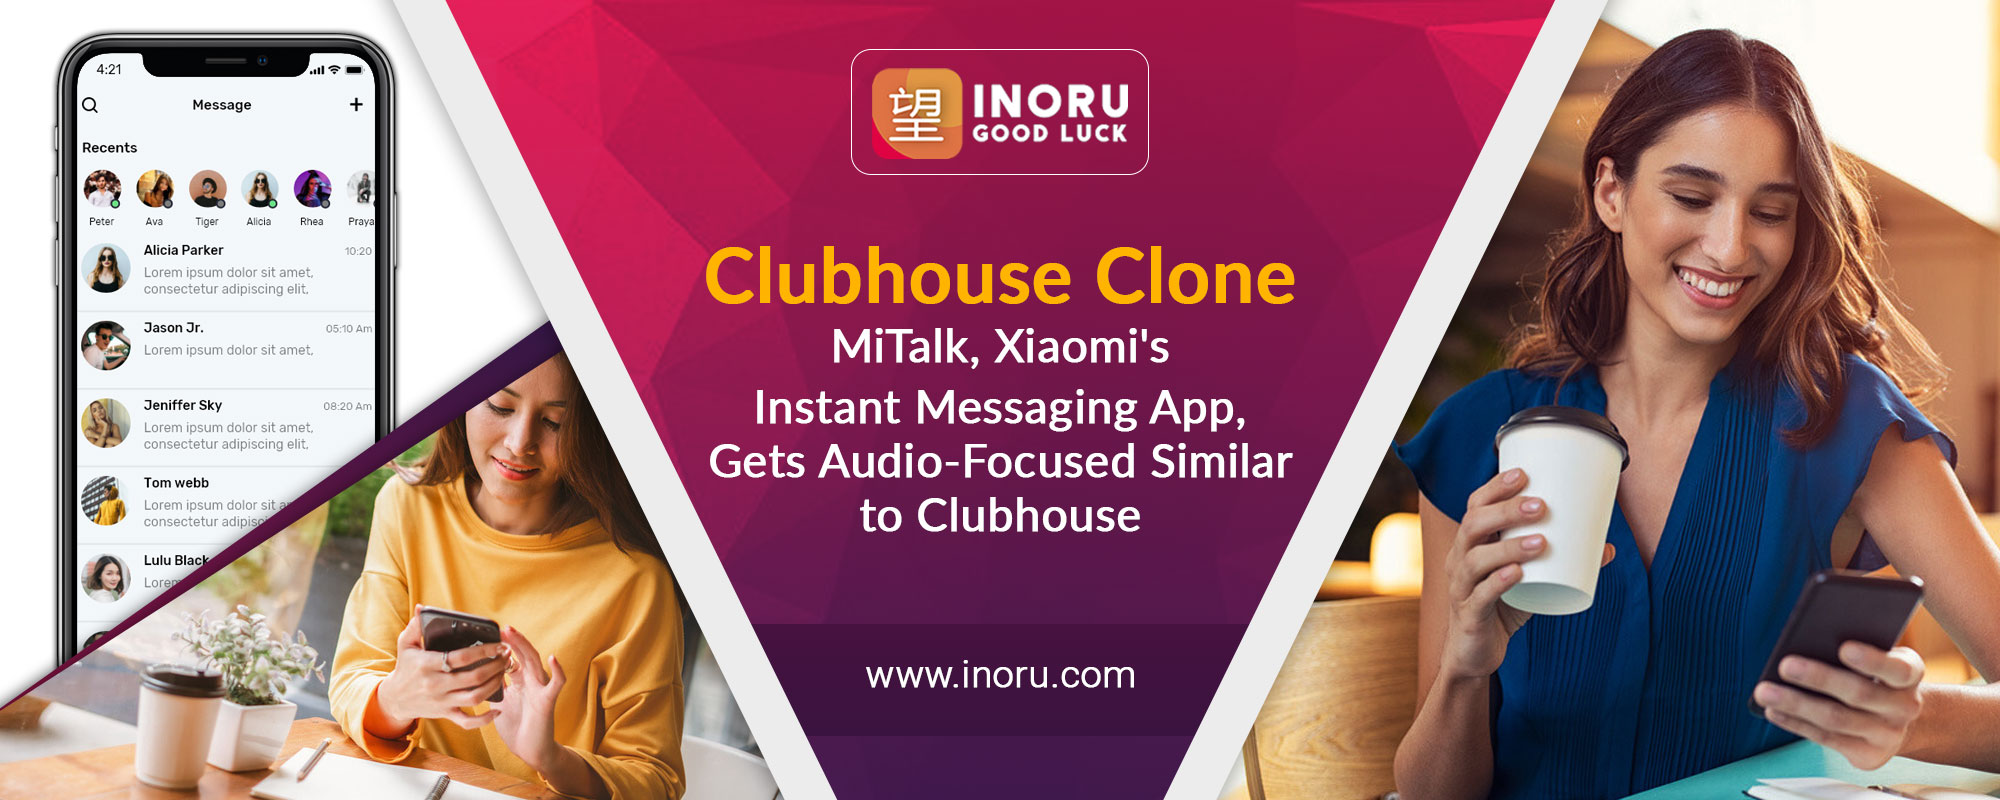 Clubhouse Clone